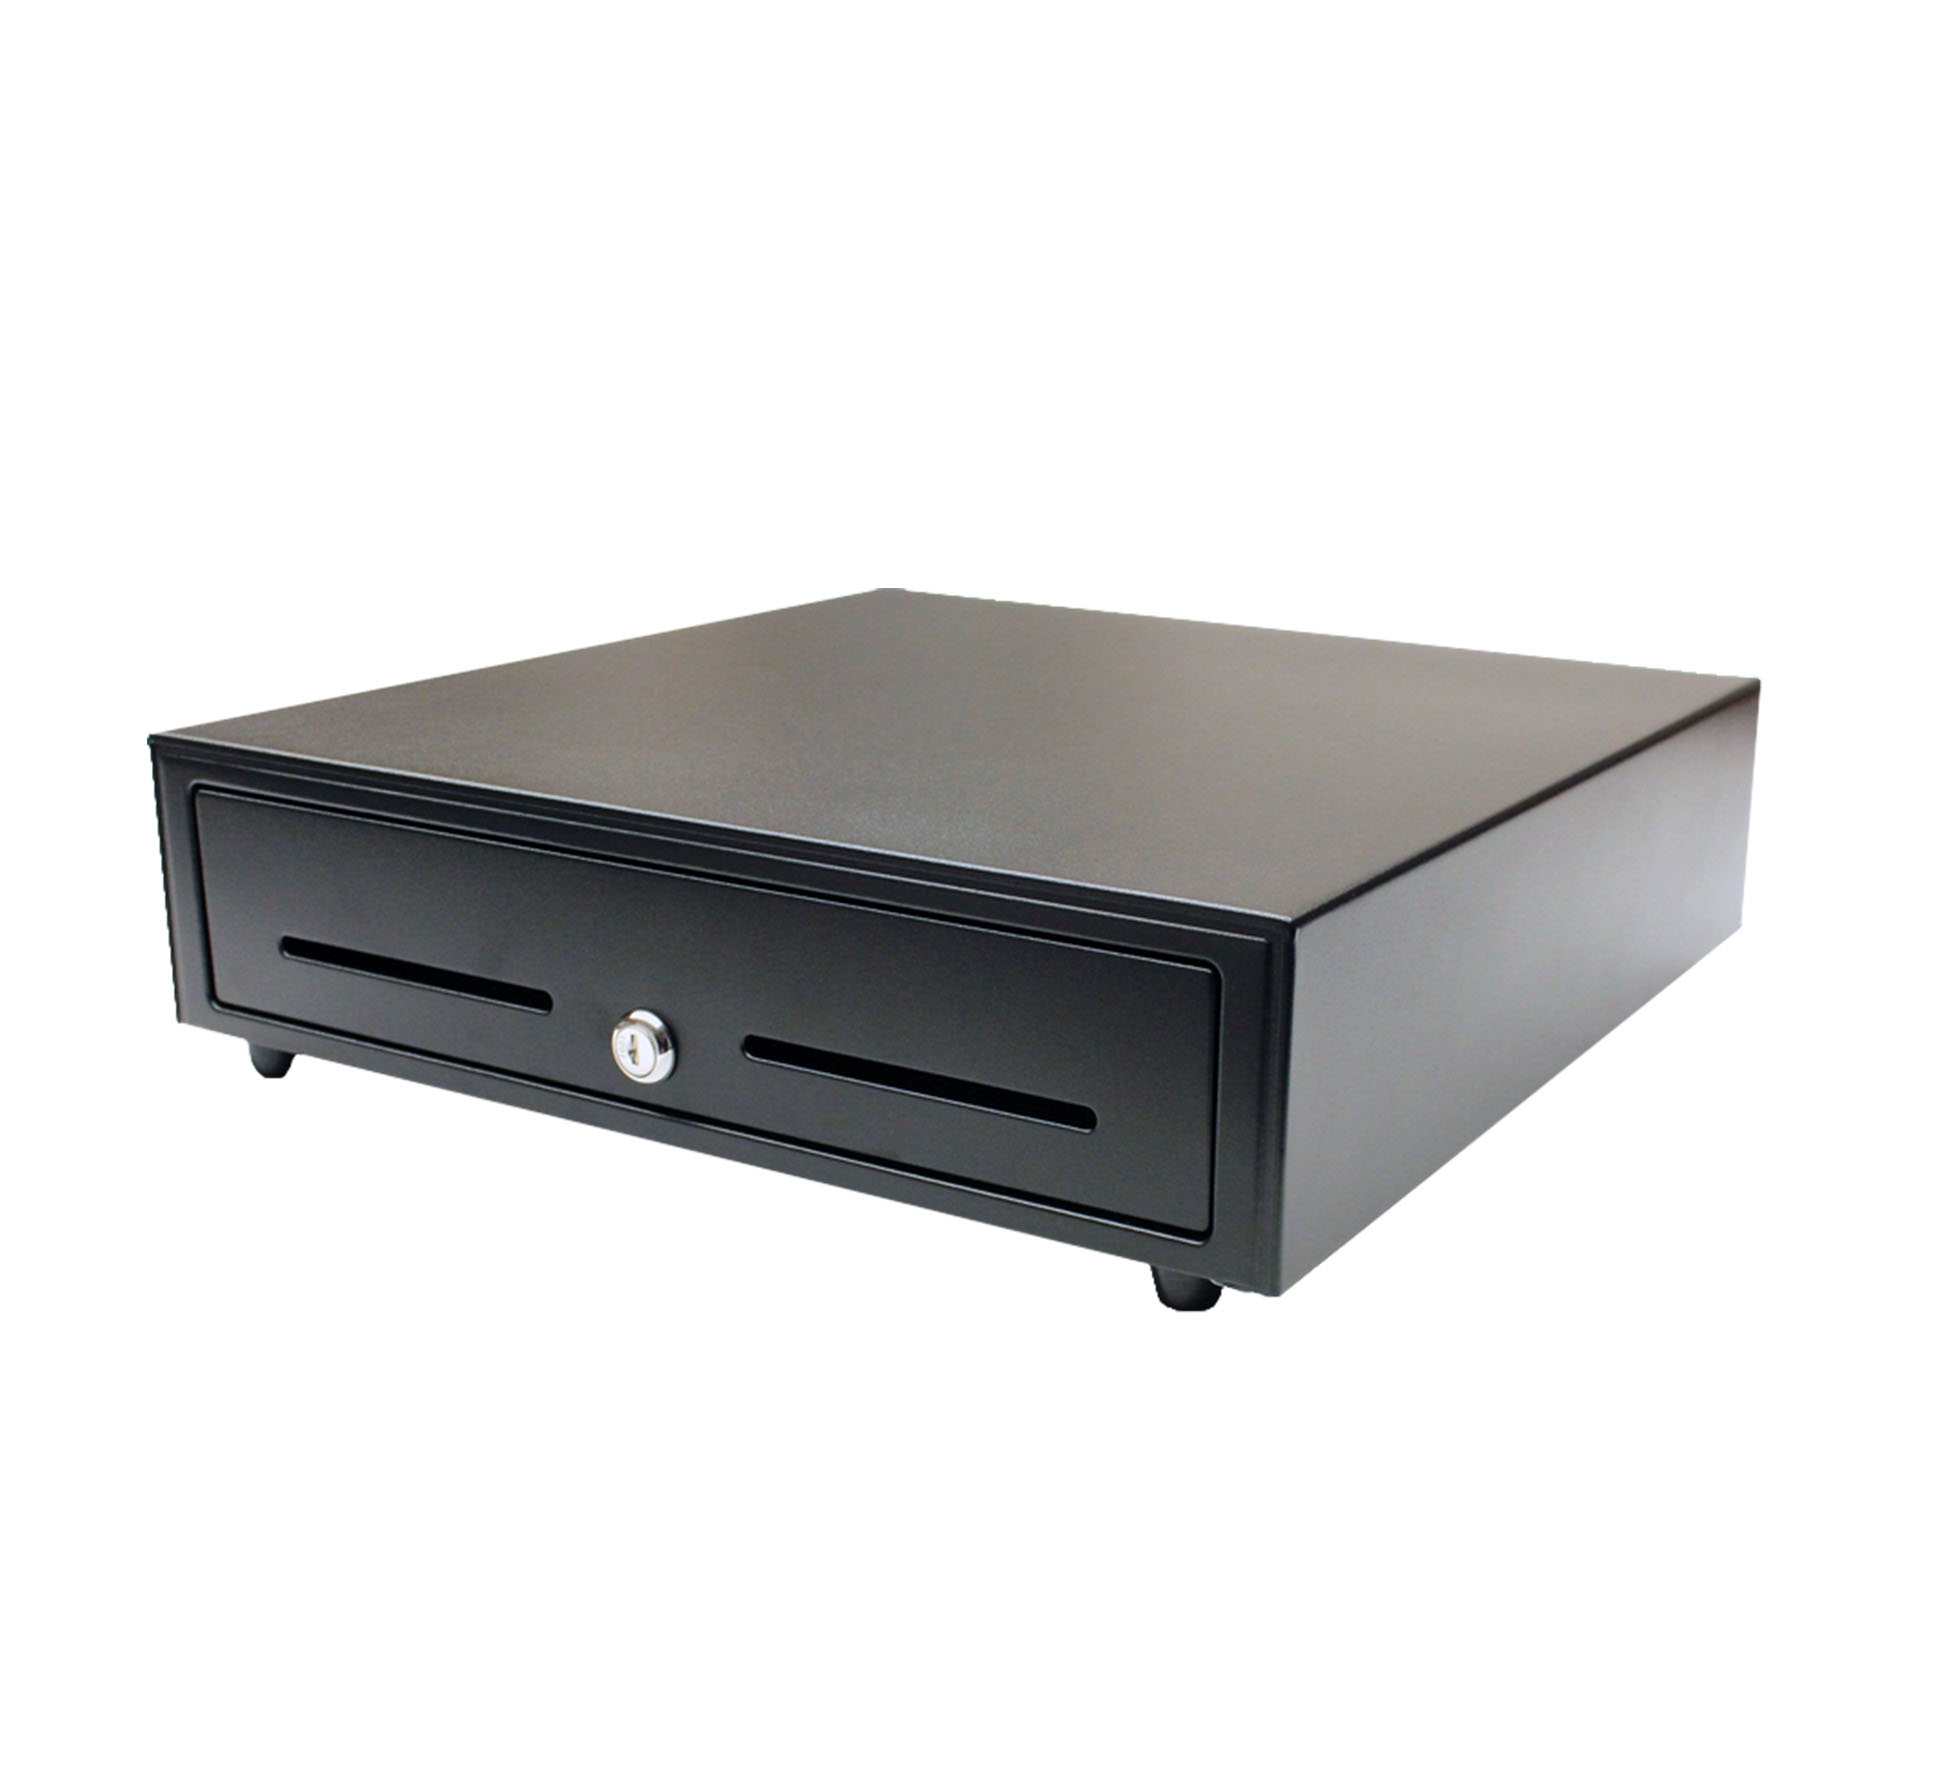 13-in cash drawer angle